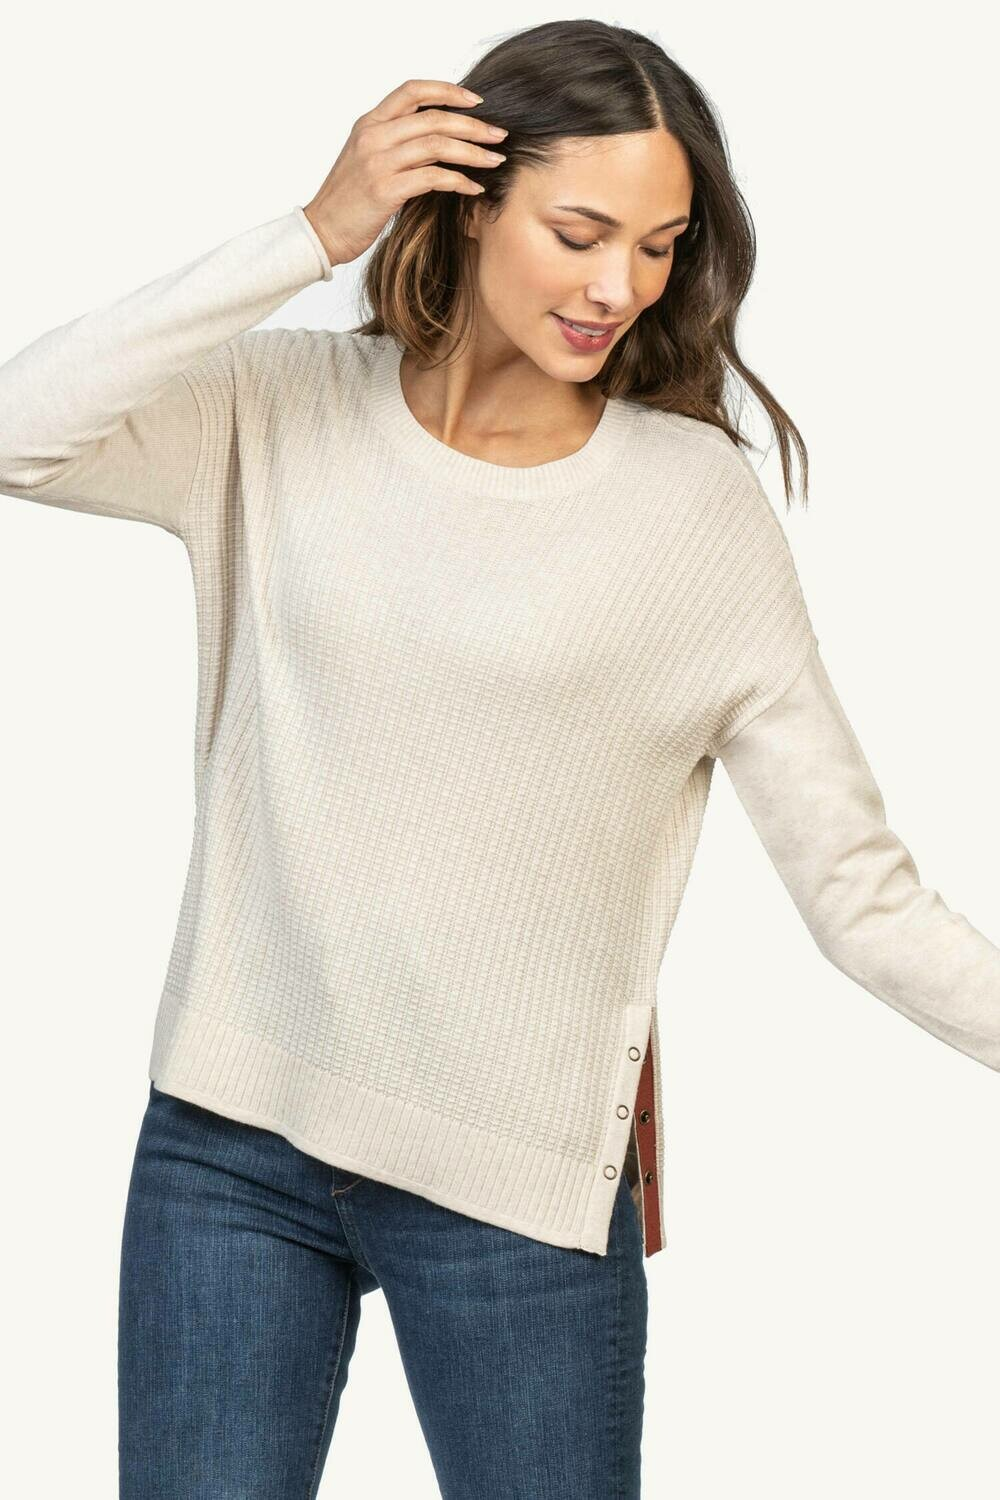 LillaP Side Snap Pullover Sweater - Magnolia